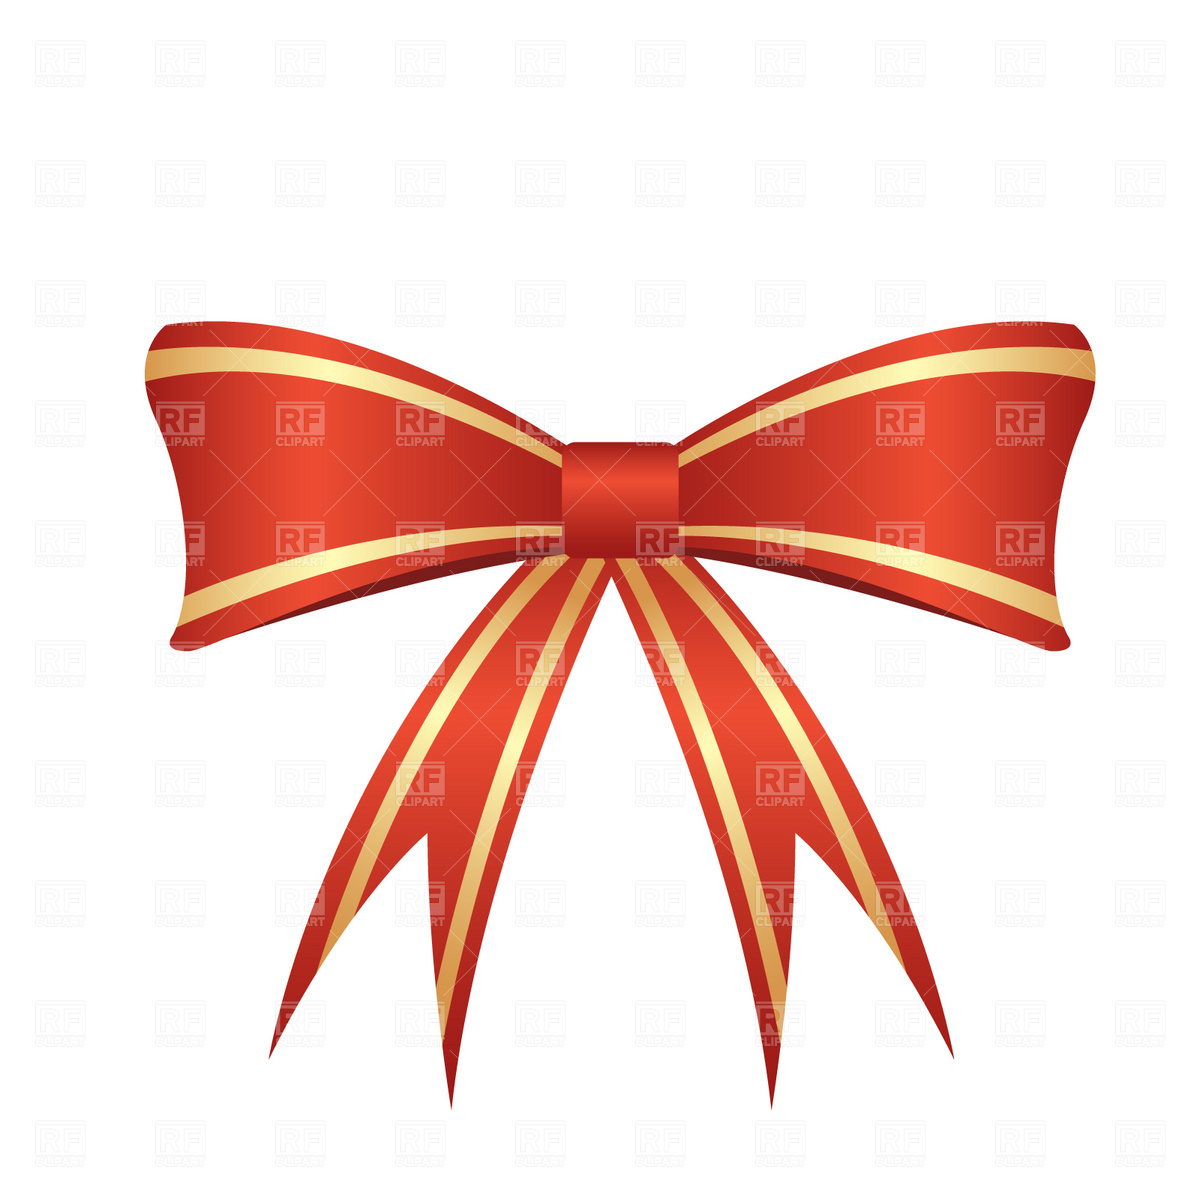 1200x1200 Red Bow Vector Image Vector Artwork Of Design Elements Prague